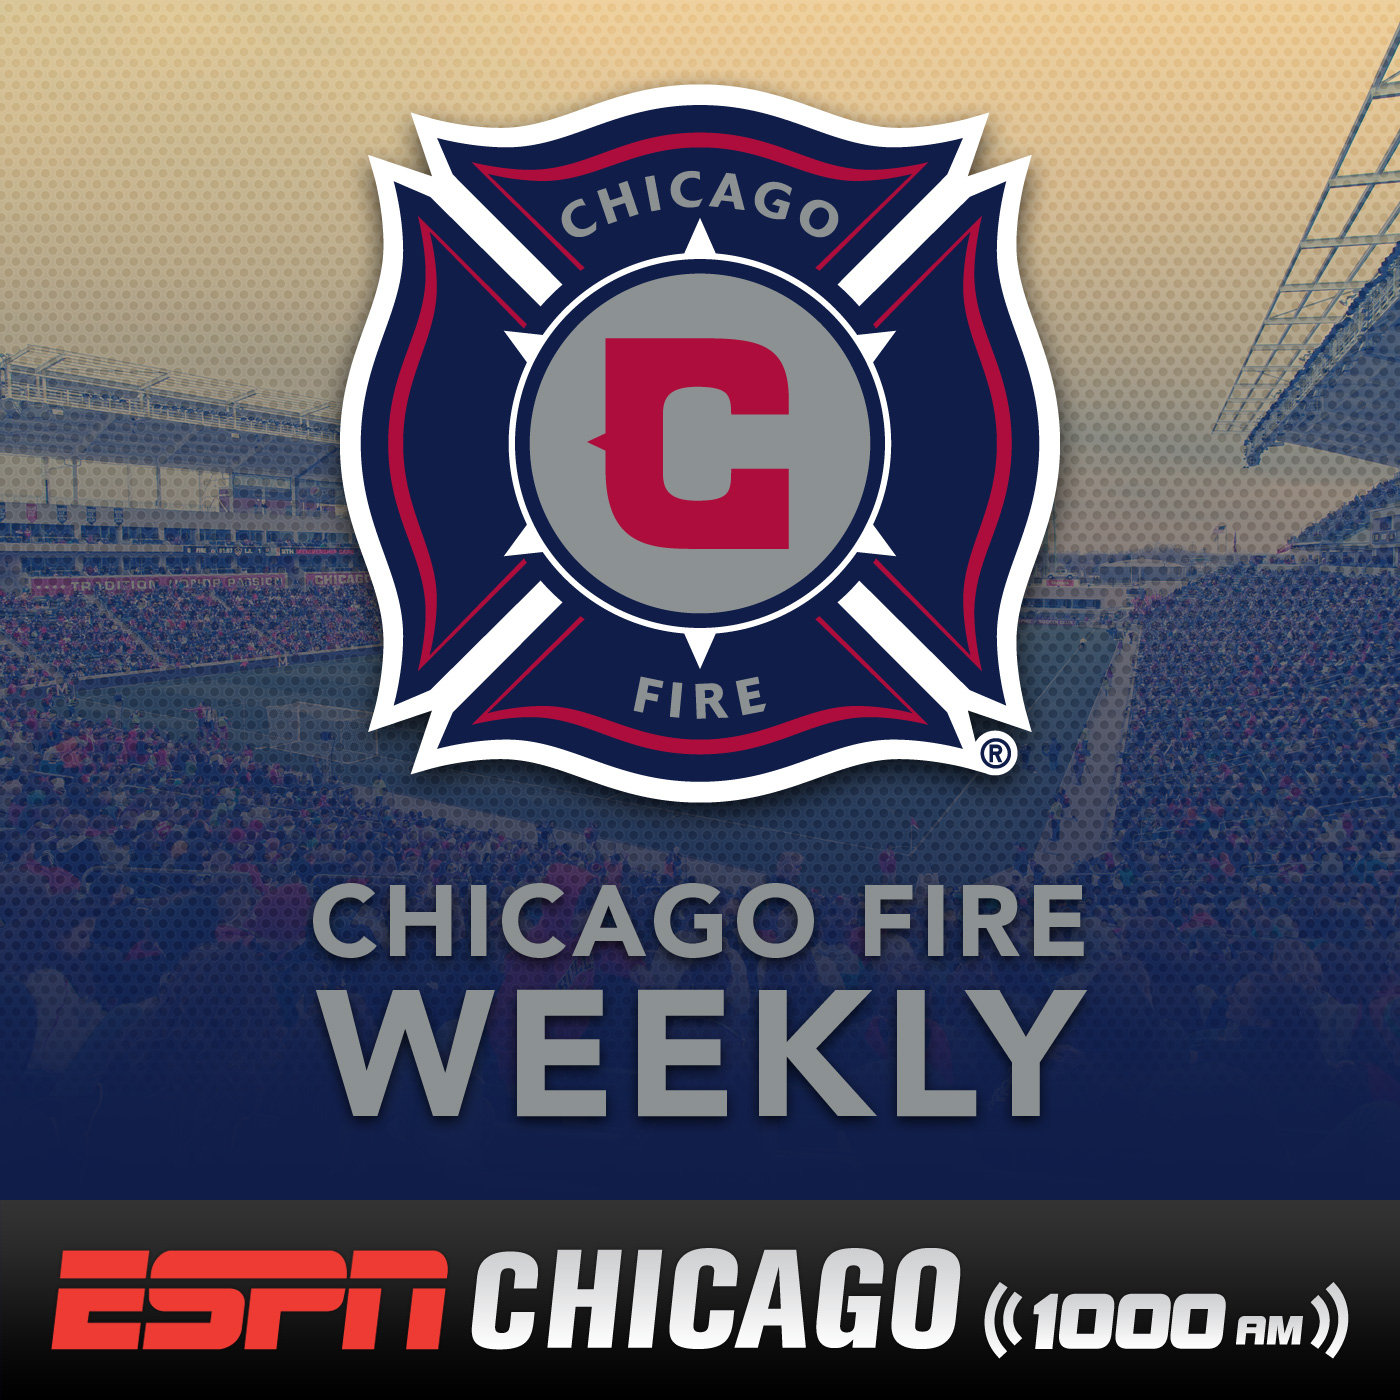 Chicago Fire Weekly